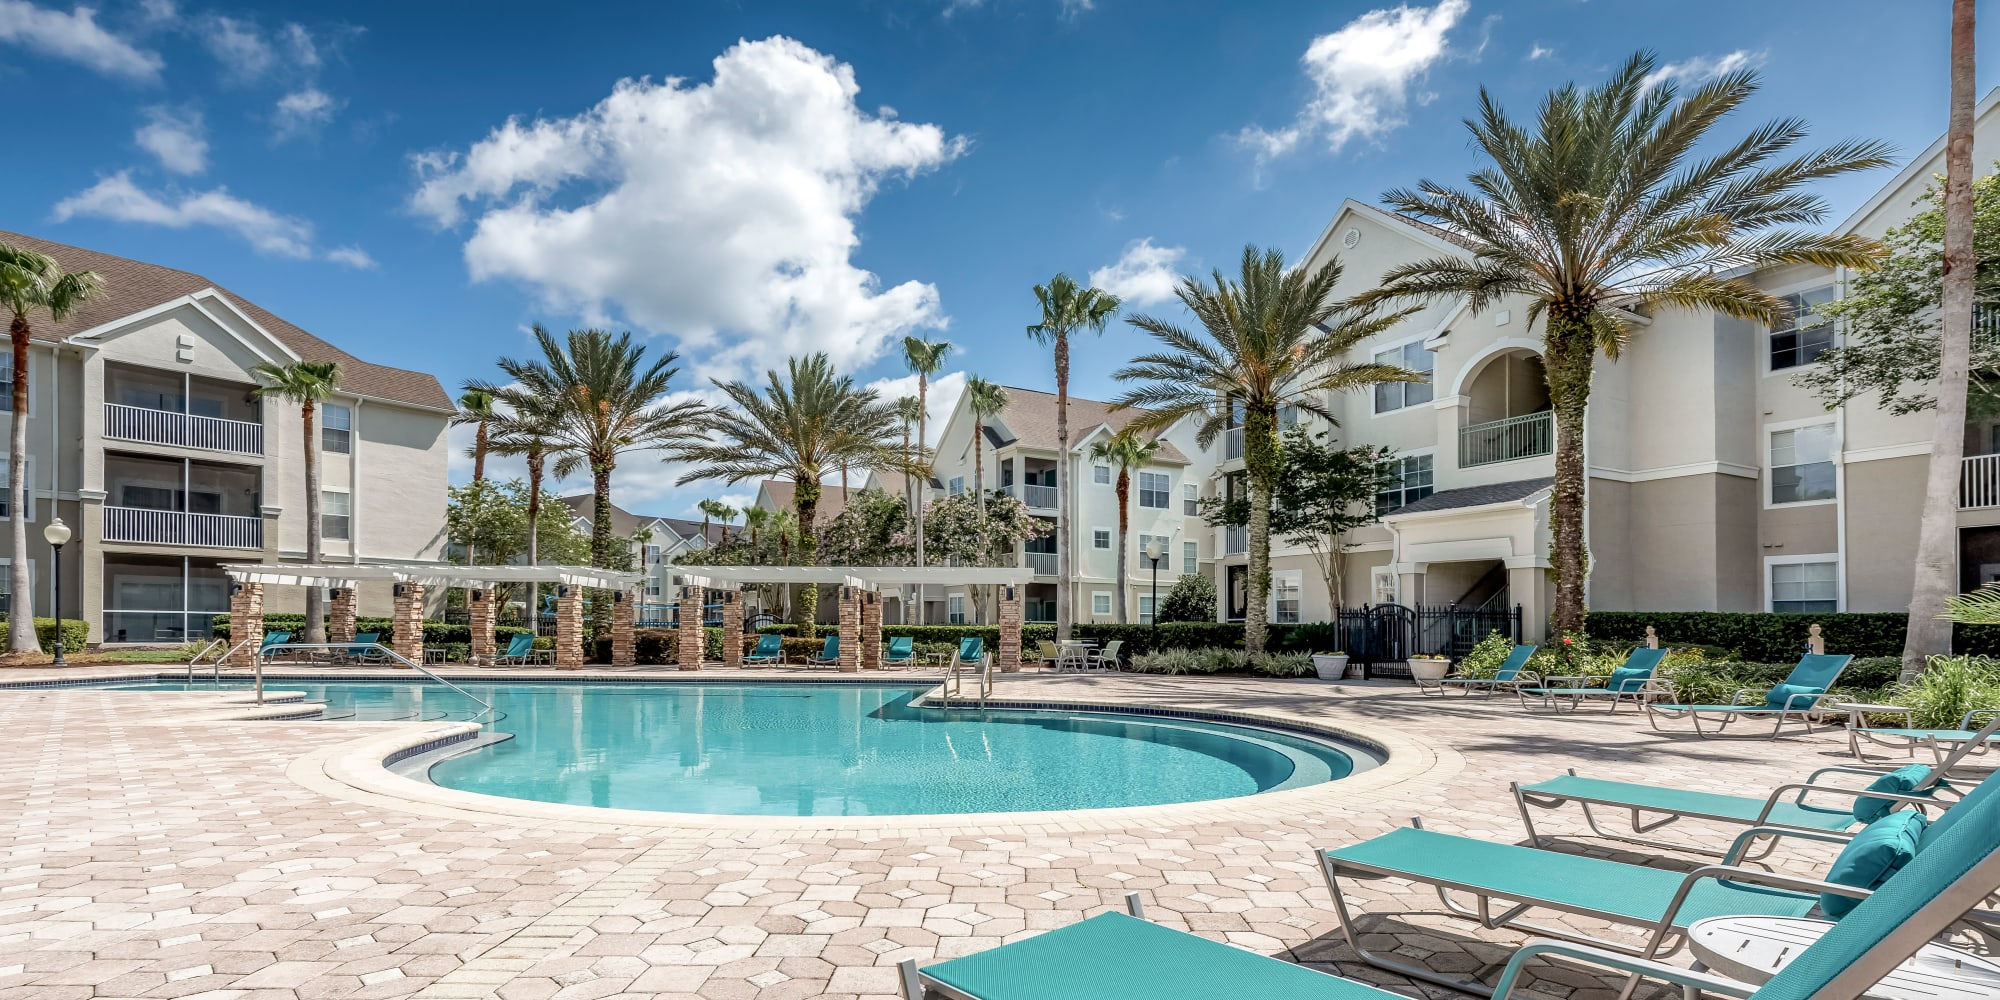 Virtual tours for Eddison at Deerwood Park in Jacksonville, Florida